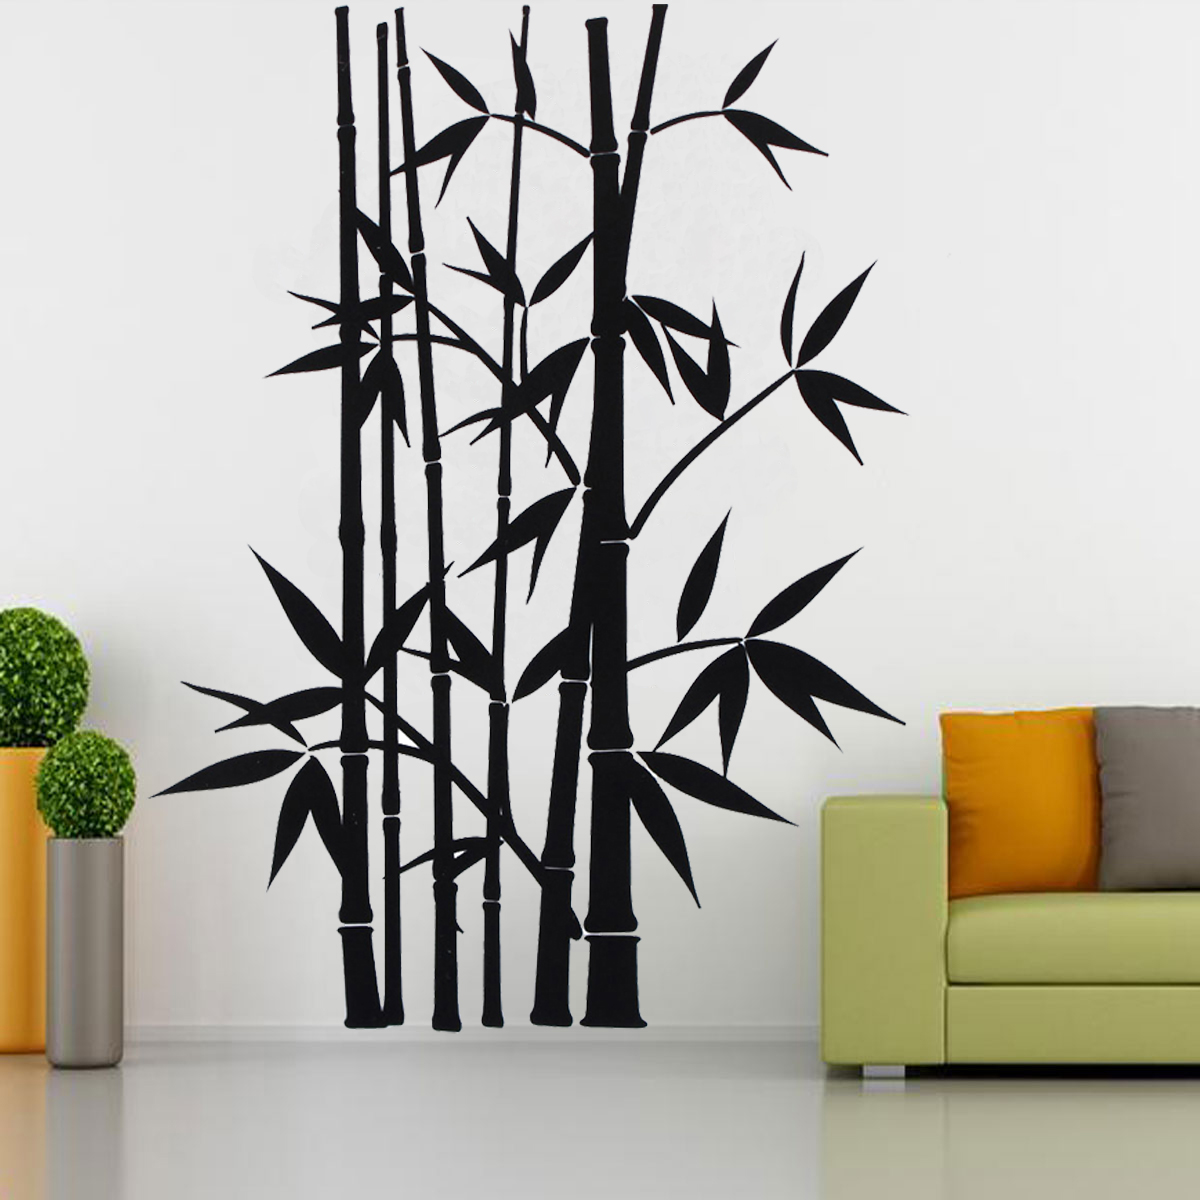 removable wall sticker home decor art decoration mural decal vinyl bamboo black ebay. Black Bedroom Furniture Sets. Home Design Ideas